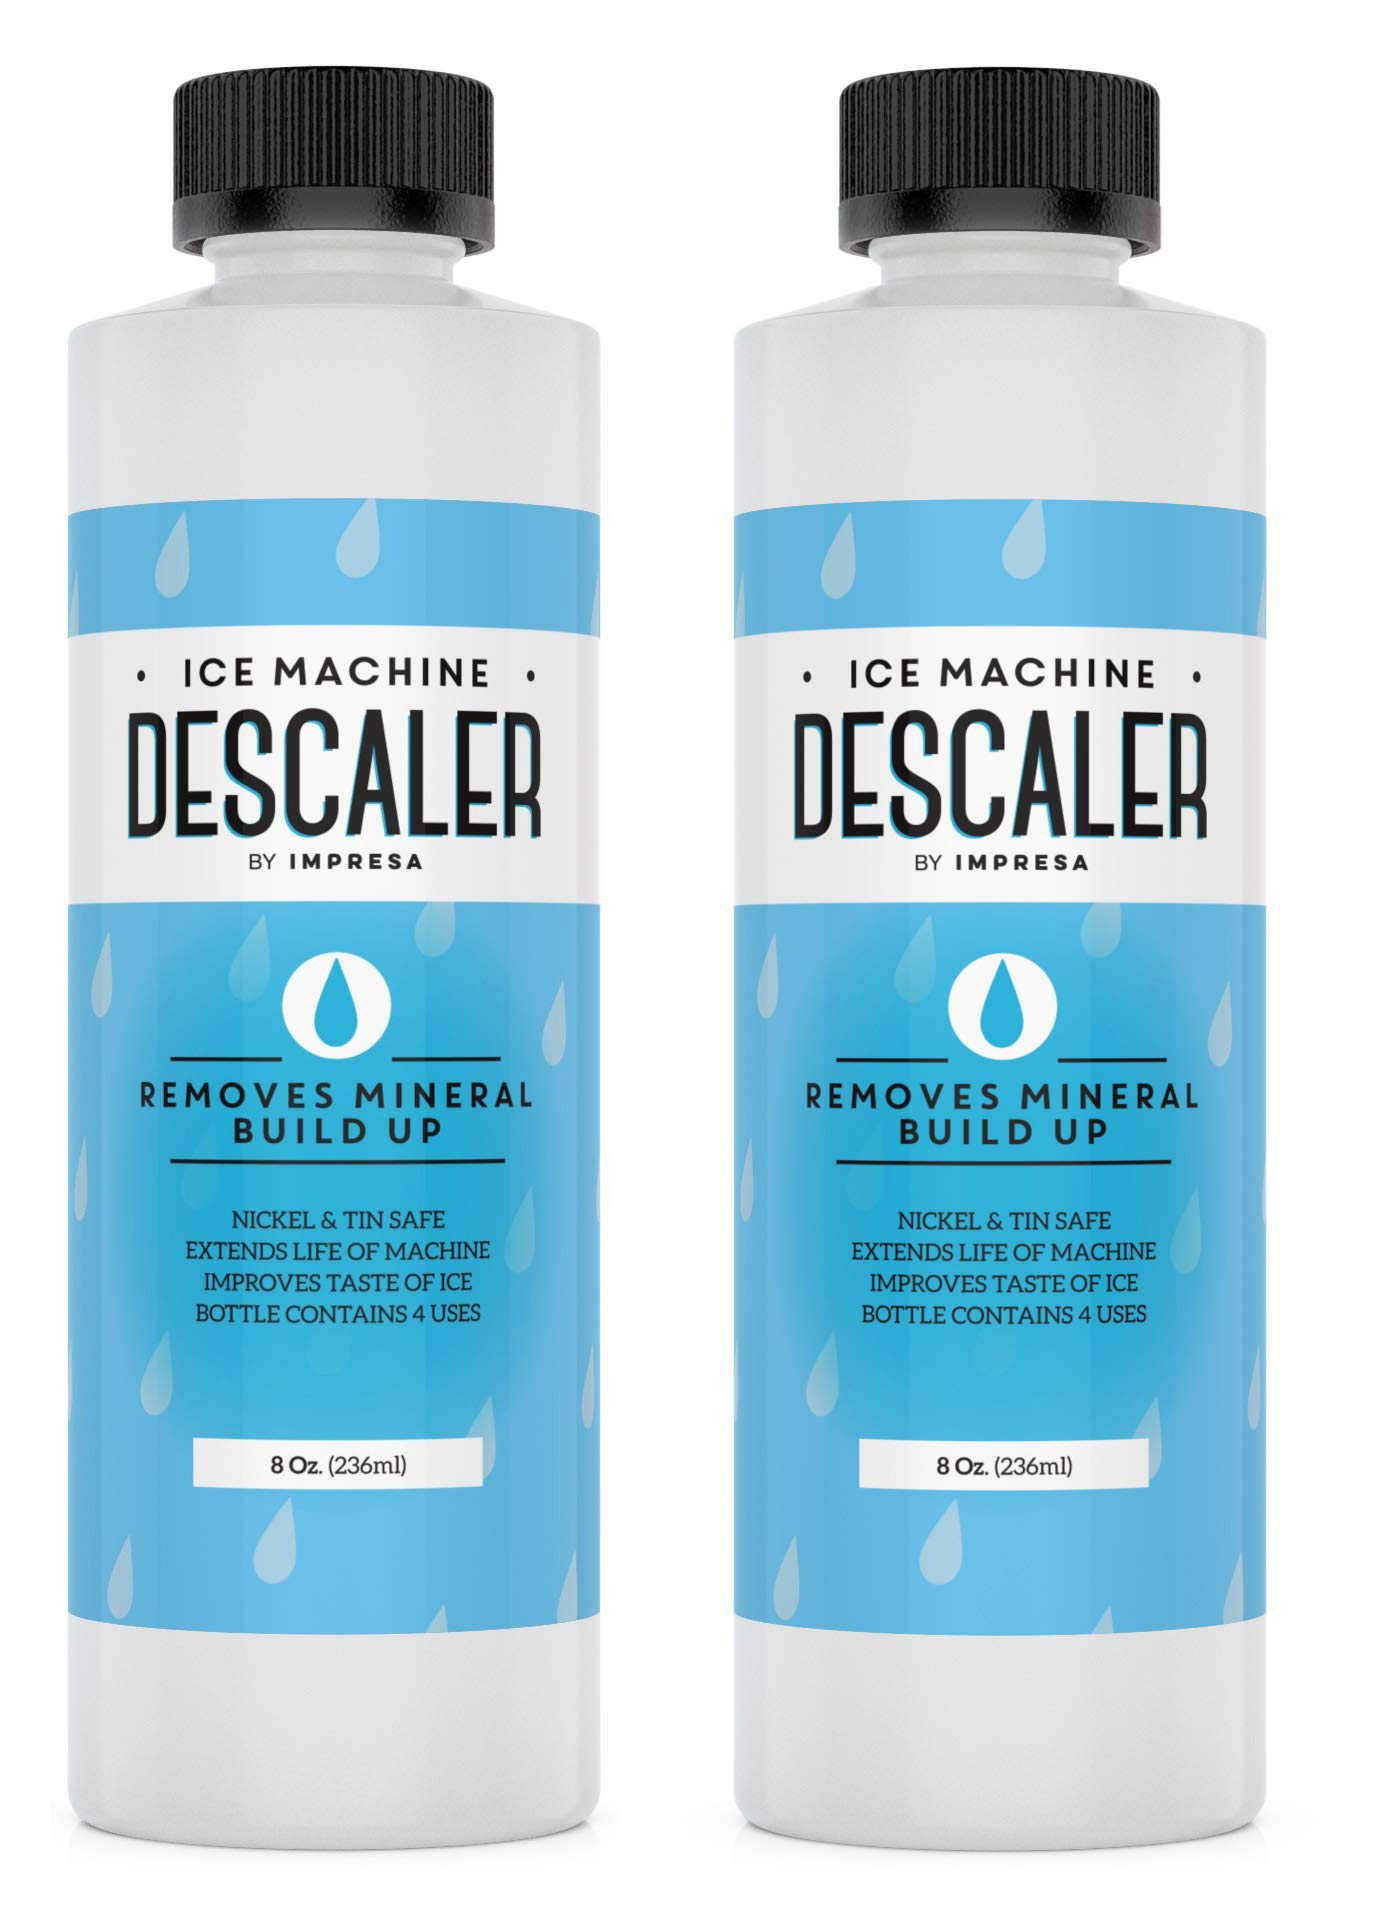 2-Pack Ice Machine Cleaner/Descaler - 8 Total Uses (4 Uses Per Bottle) - Made in USA - Works on Scotsman, Manitowoc, Opal and Virtually All Other Brands (Ice Maker Cleaner/Icemaker Cleaner)